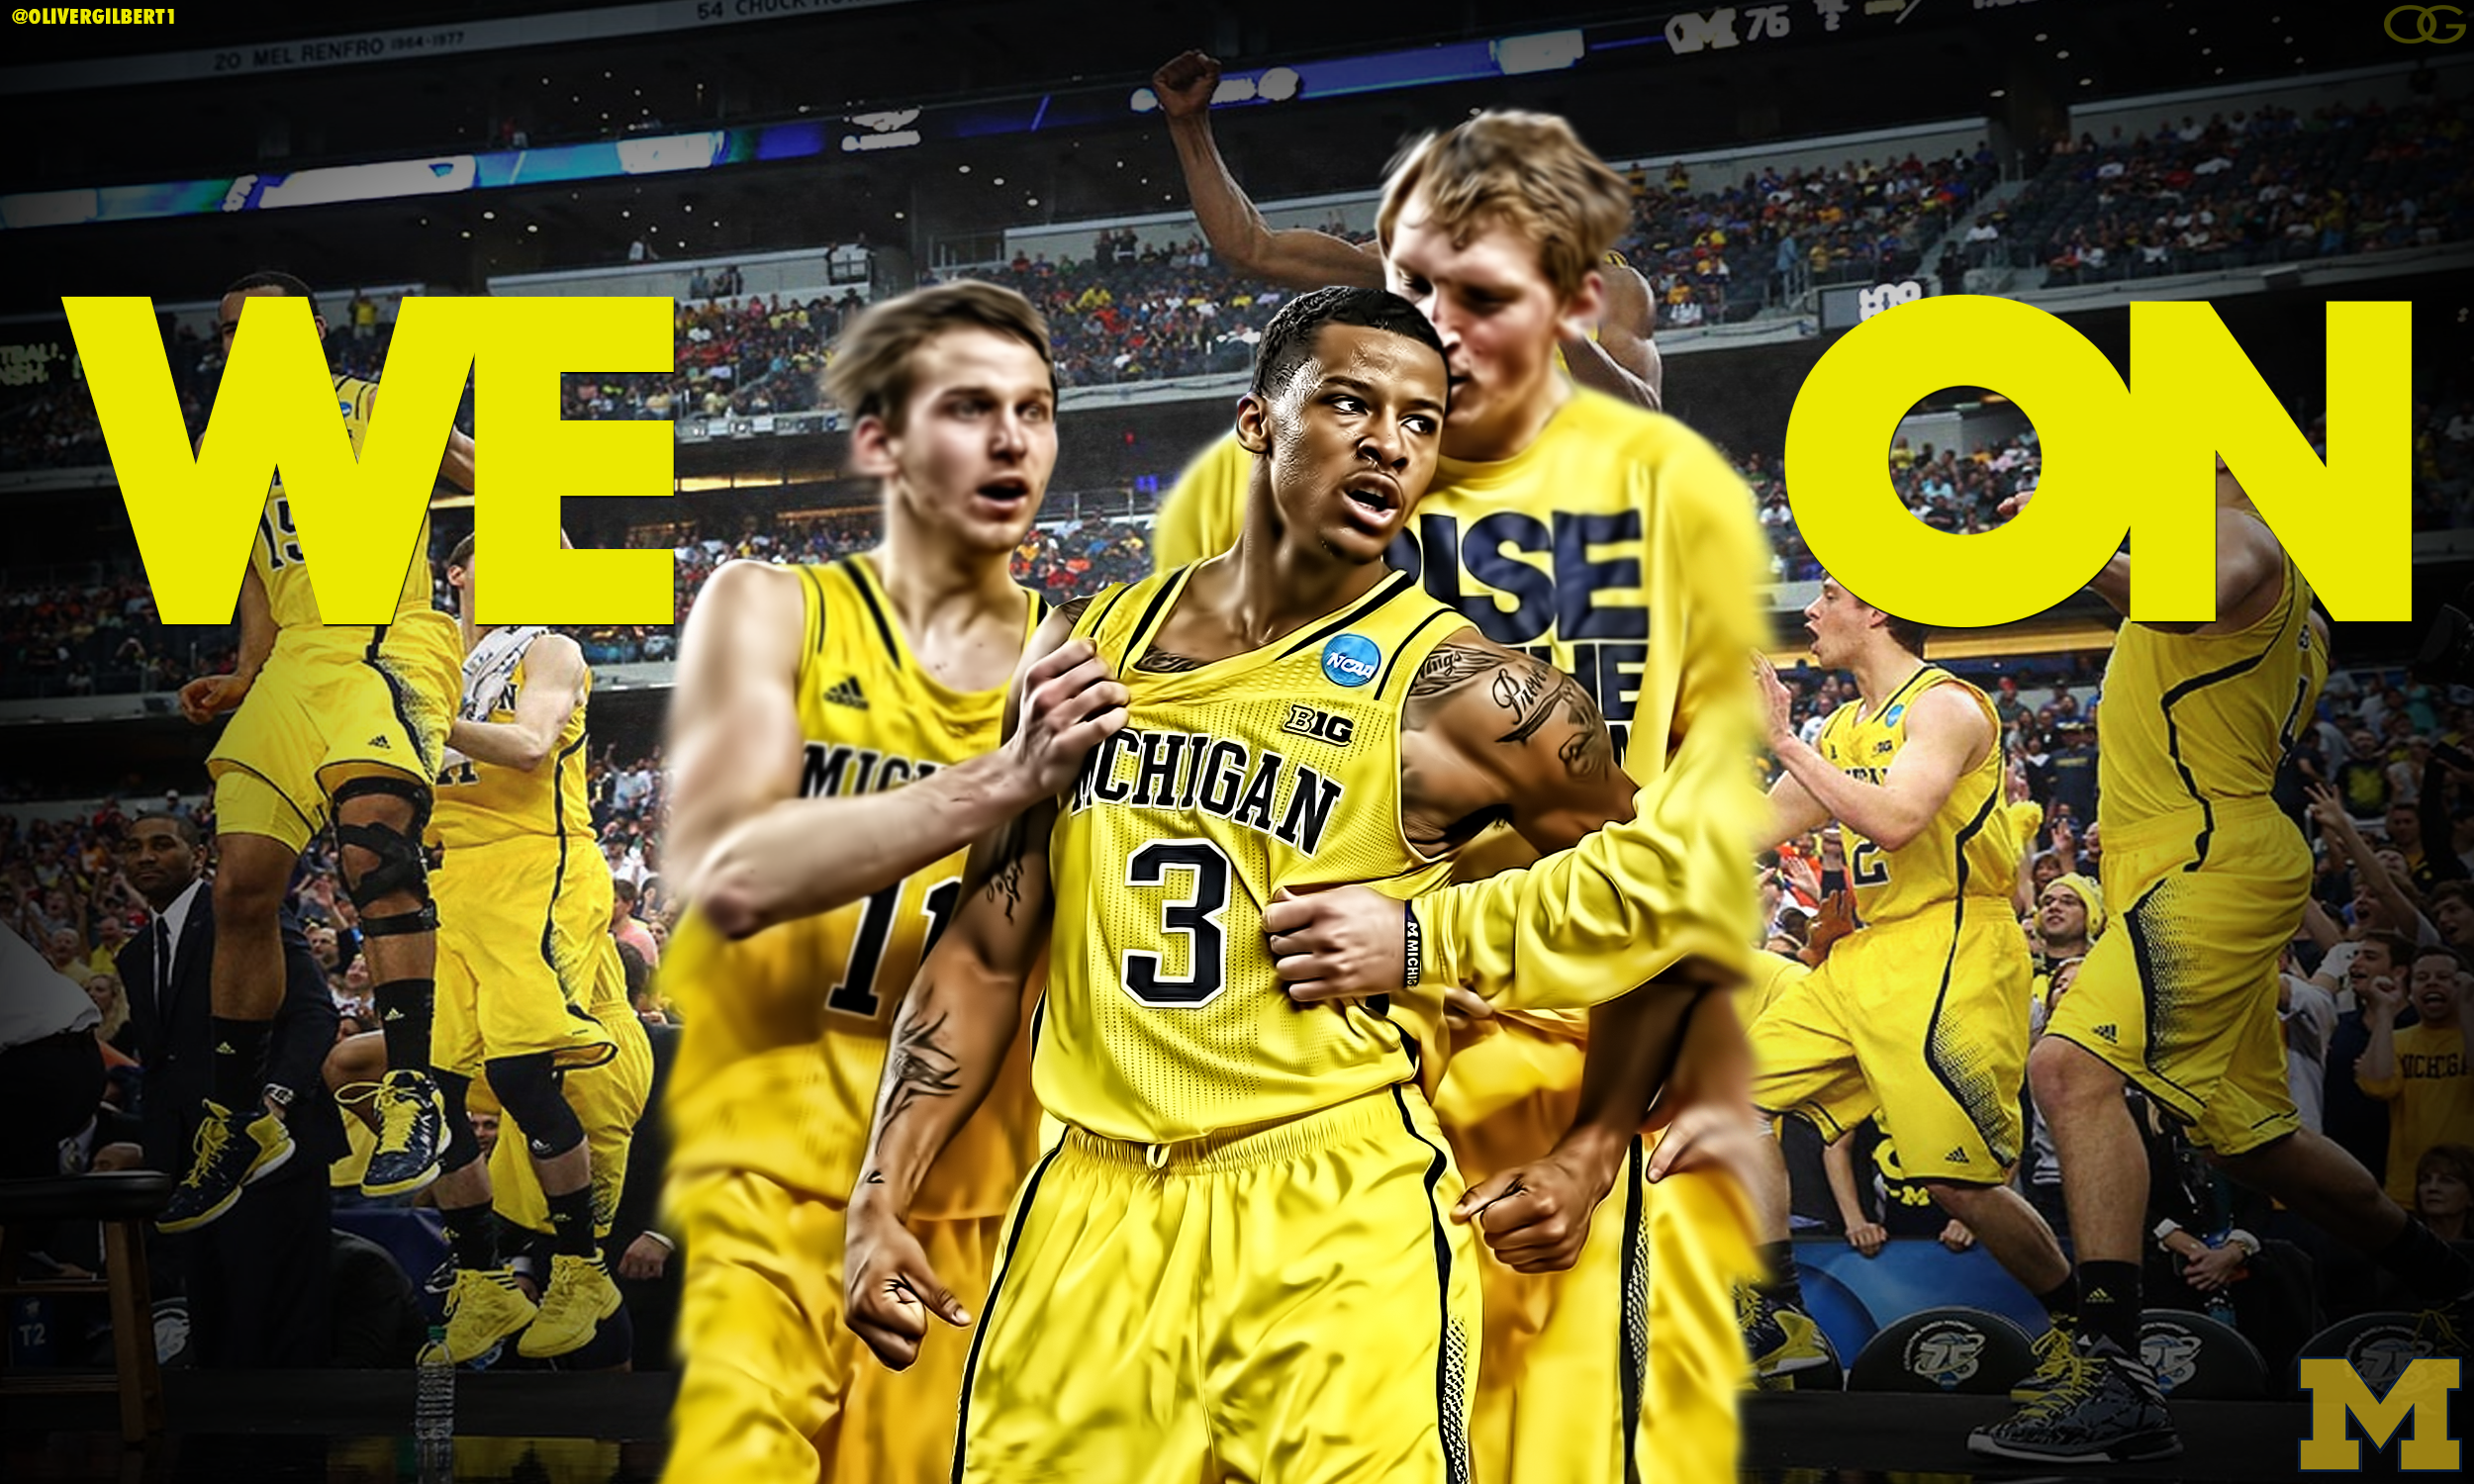 michigan basketball logo   Google Search Ideas for the House 2500x1500